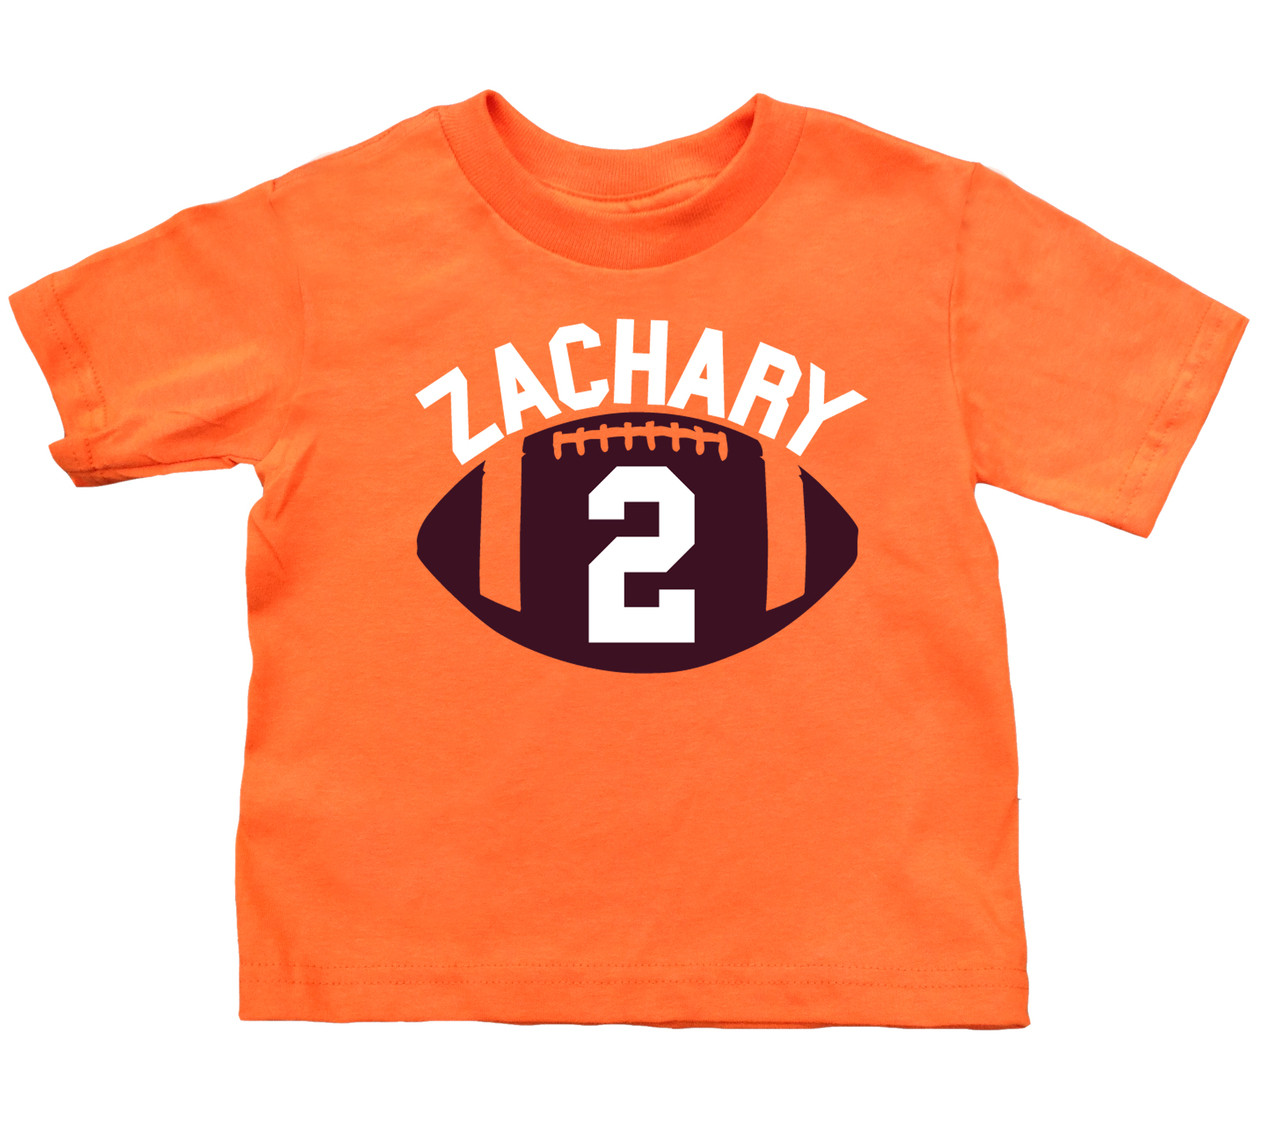 Football birthday tshirt on orange shirt